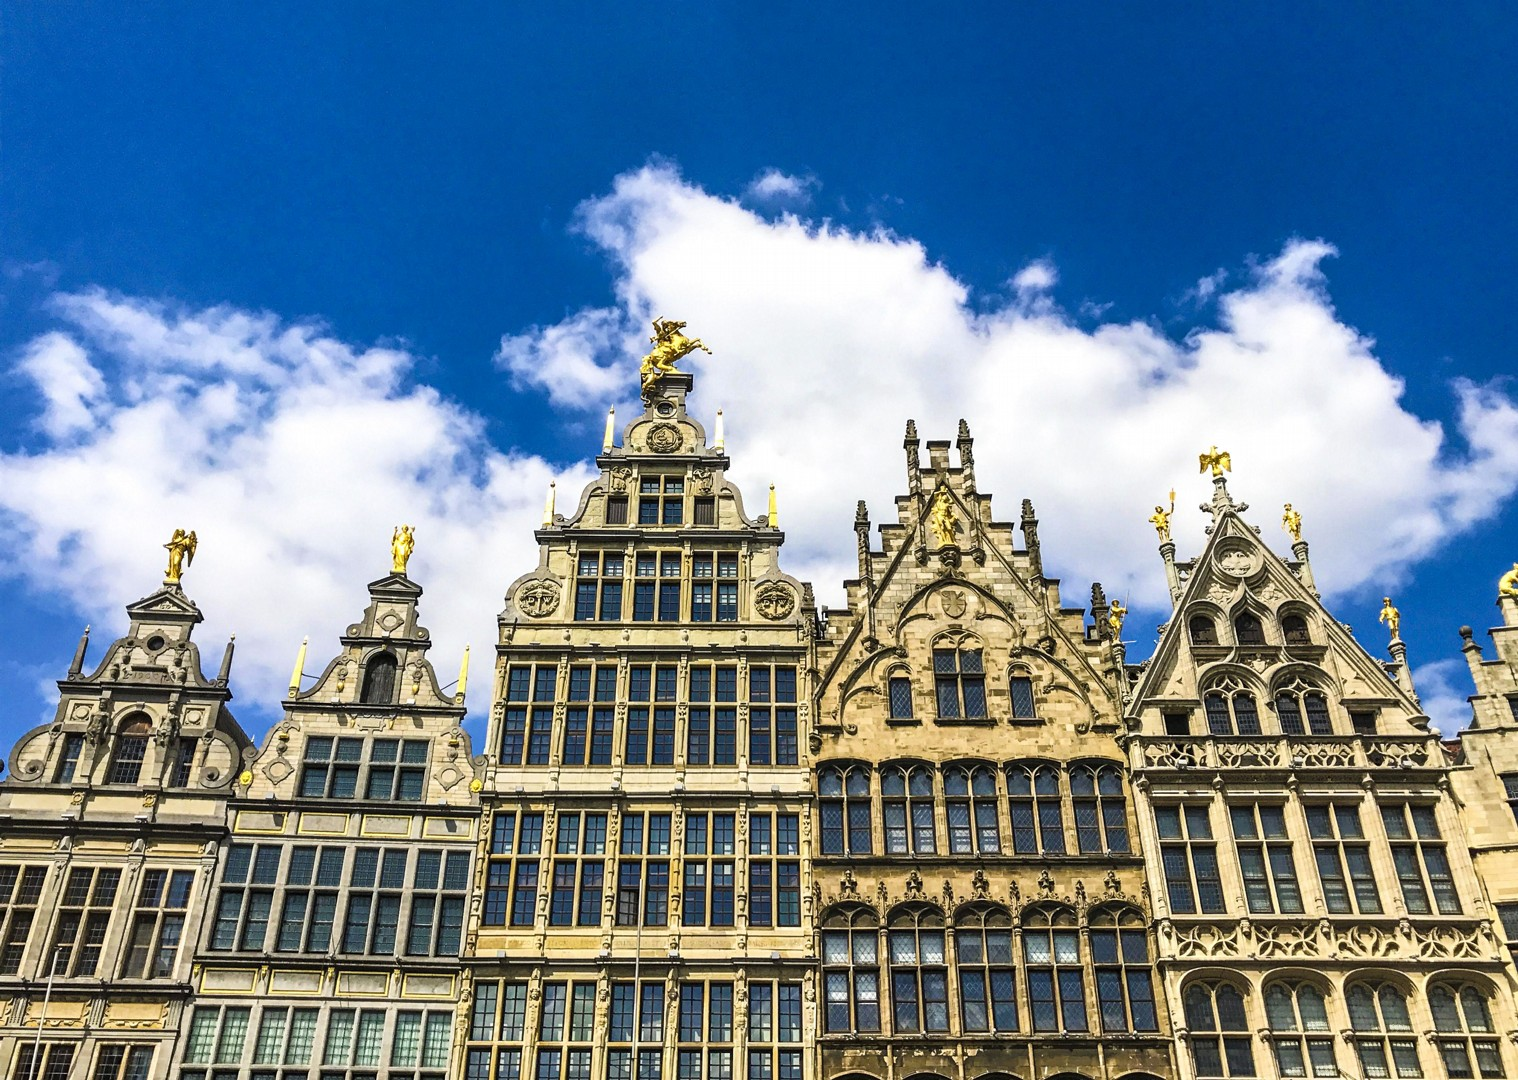 grote-markt-antwerp-belgium-visit-by-bike-and-barge.jpg - Holland and Belgium - Amsterdam to Bruges - Leisure Cycling